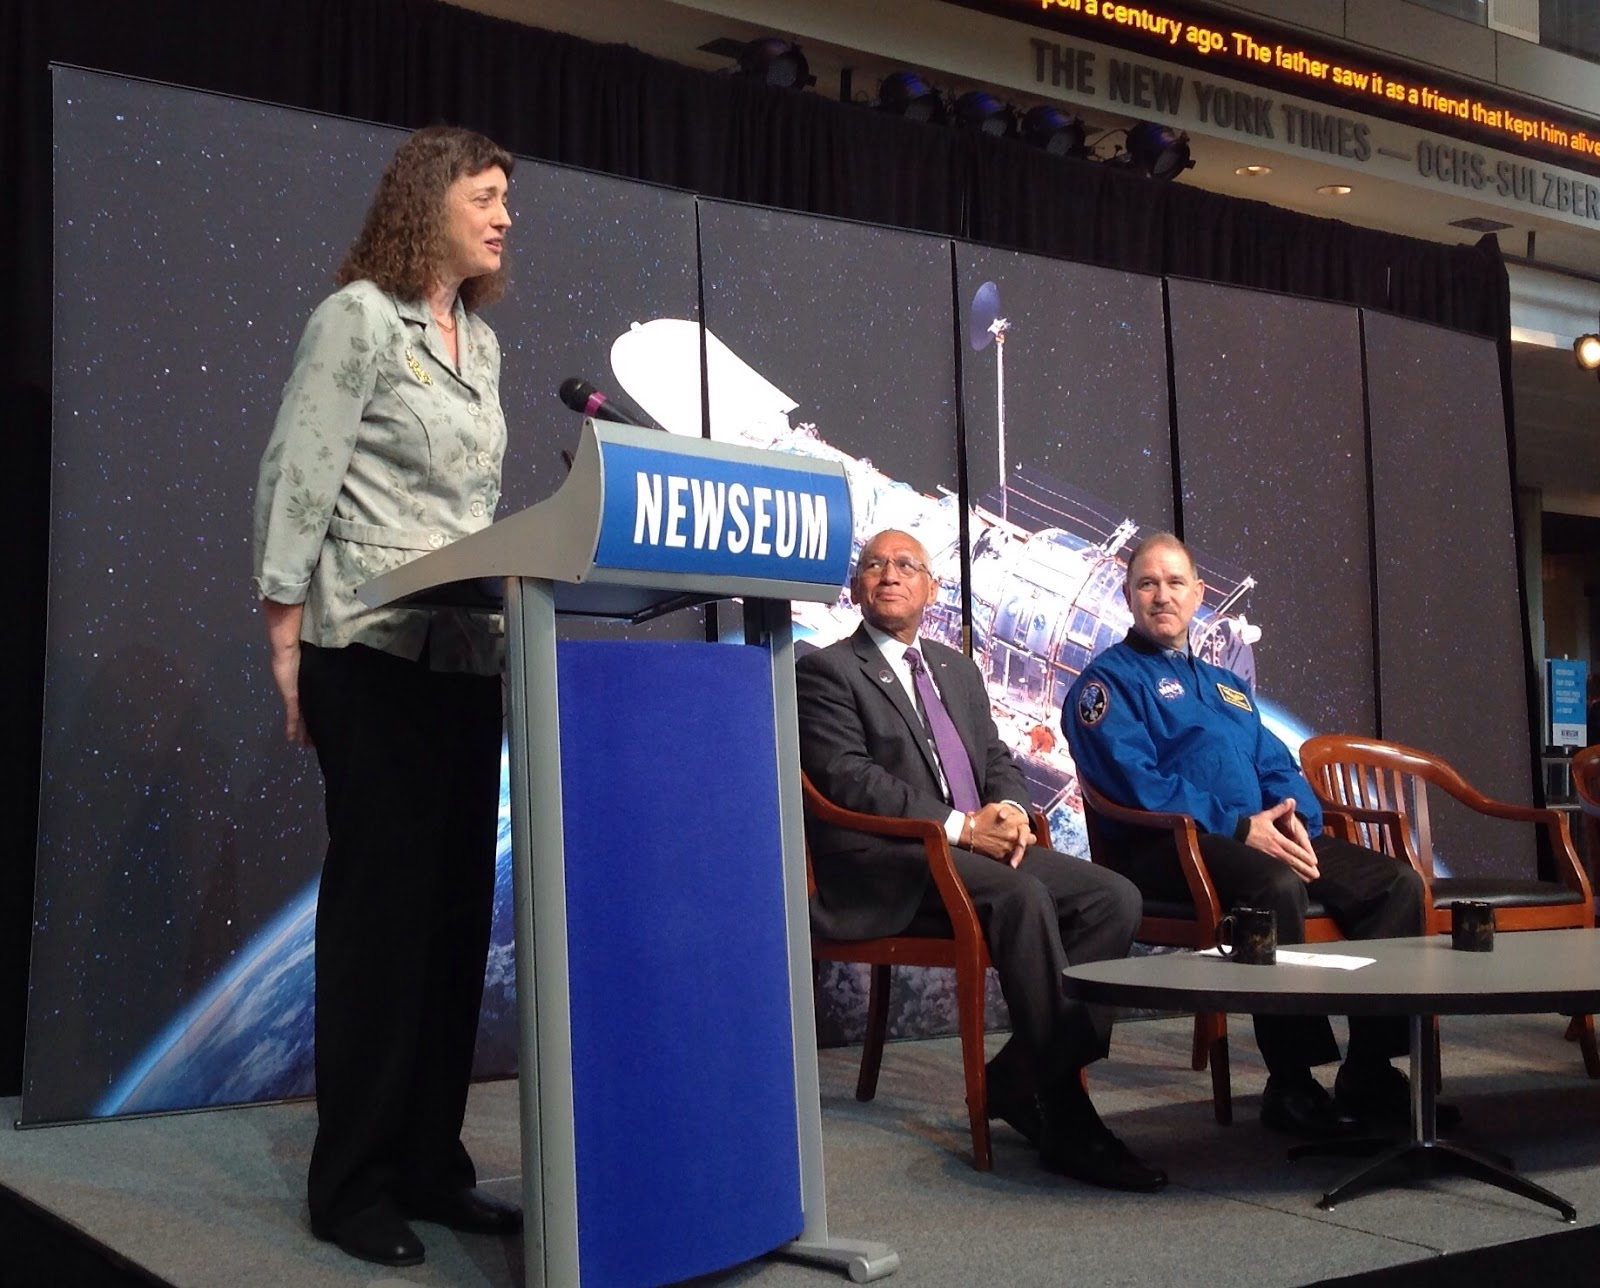 Jennifer Wiseman, Charles Bolden, and John Grunsfeld, speak at a NASA Press Conference for the Hubble Space Telescope 25th Anniversary Image Unveiling.